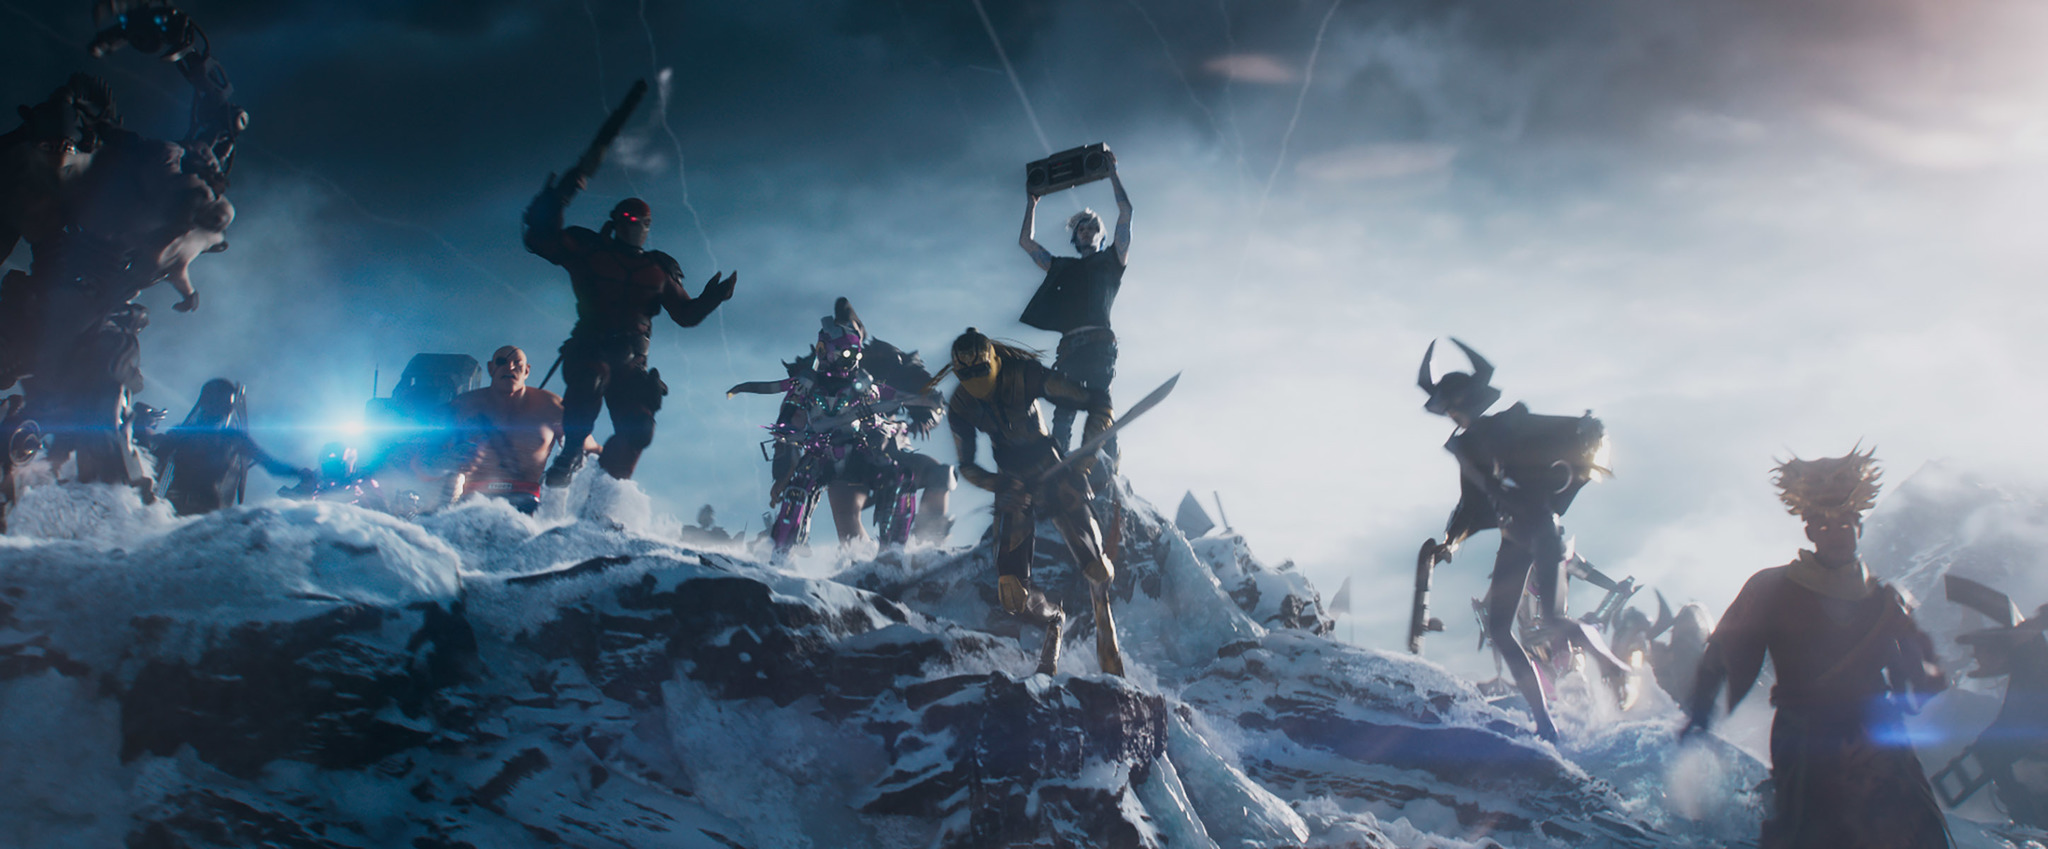 Ready Player One 2018 Photo Gallery Imdb